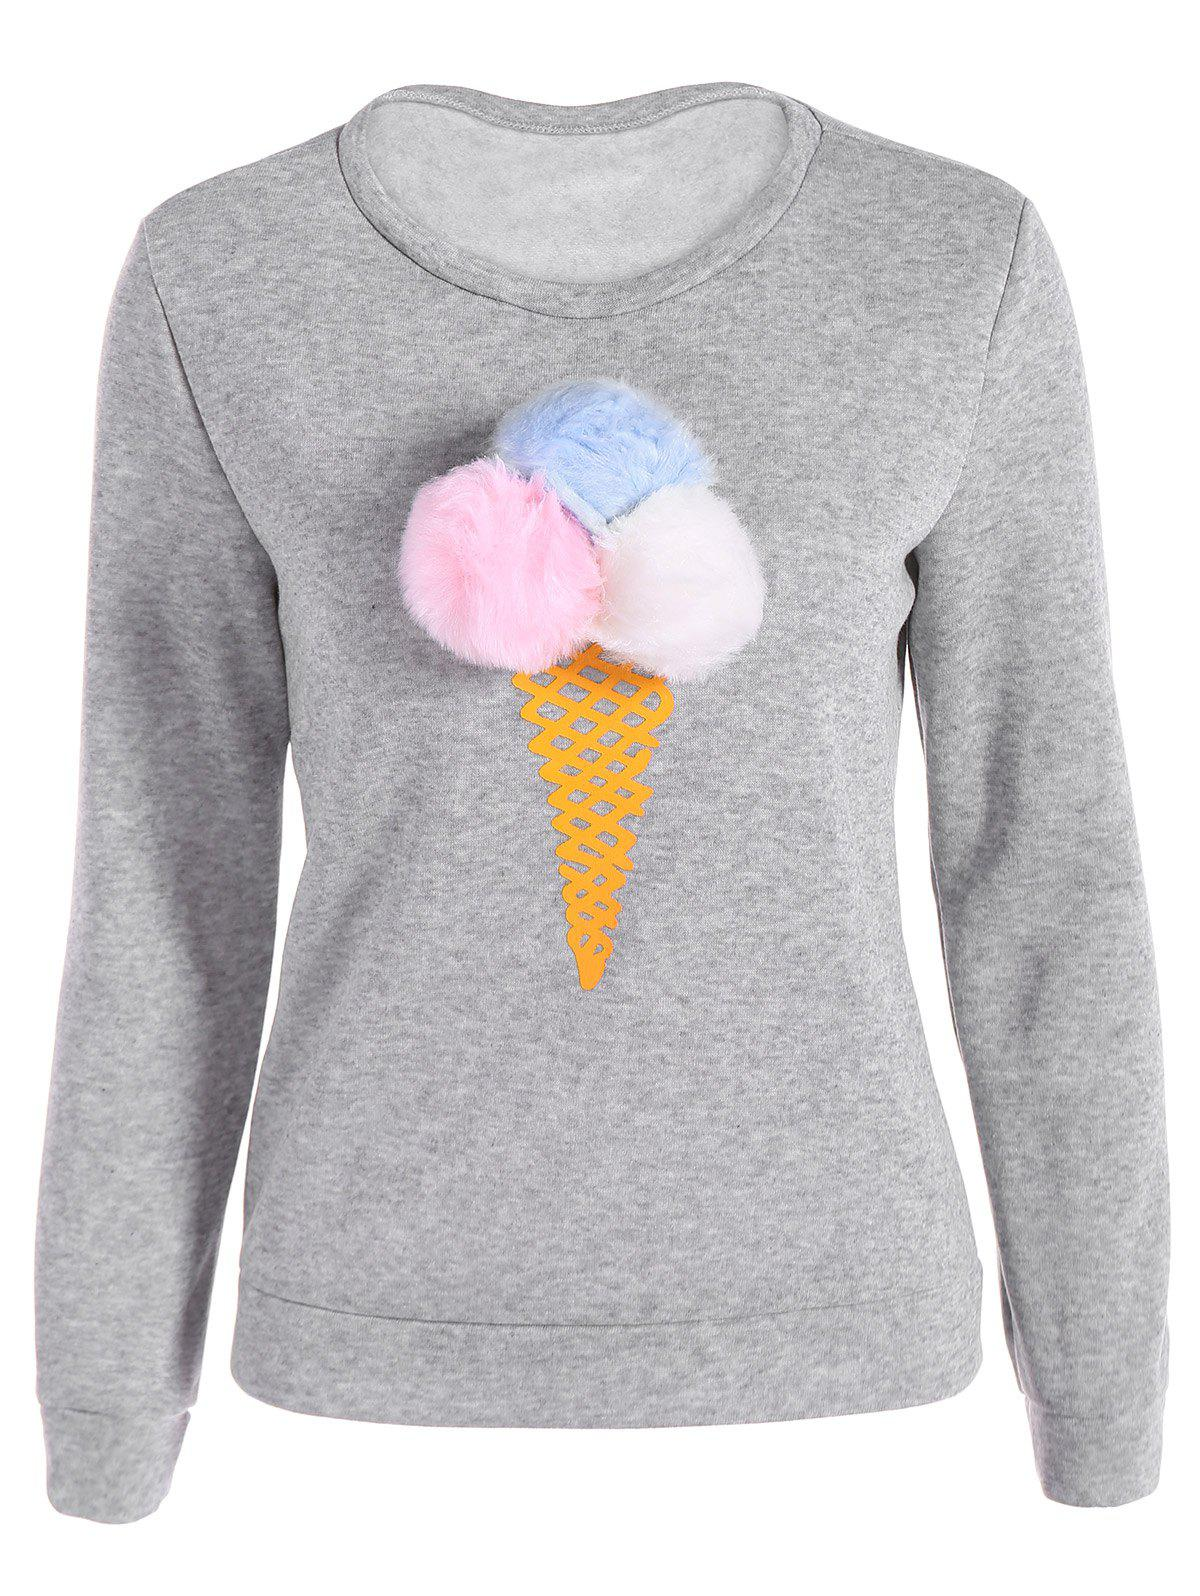 Pompon Ice-Cream Print Pullover Sweatshirt - GRAY XL